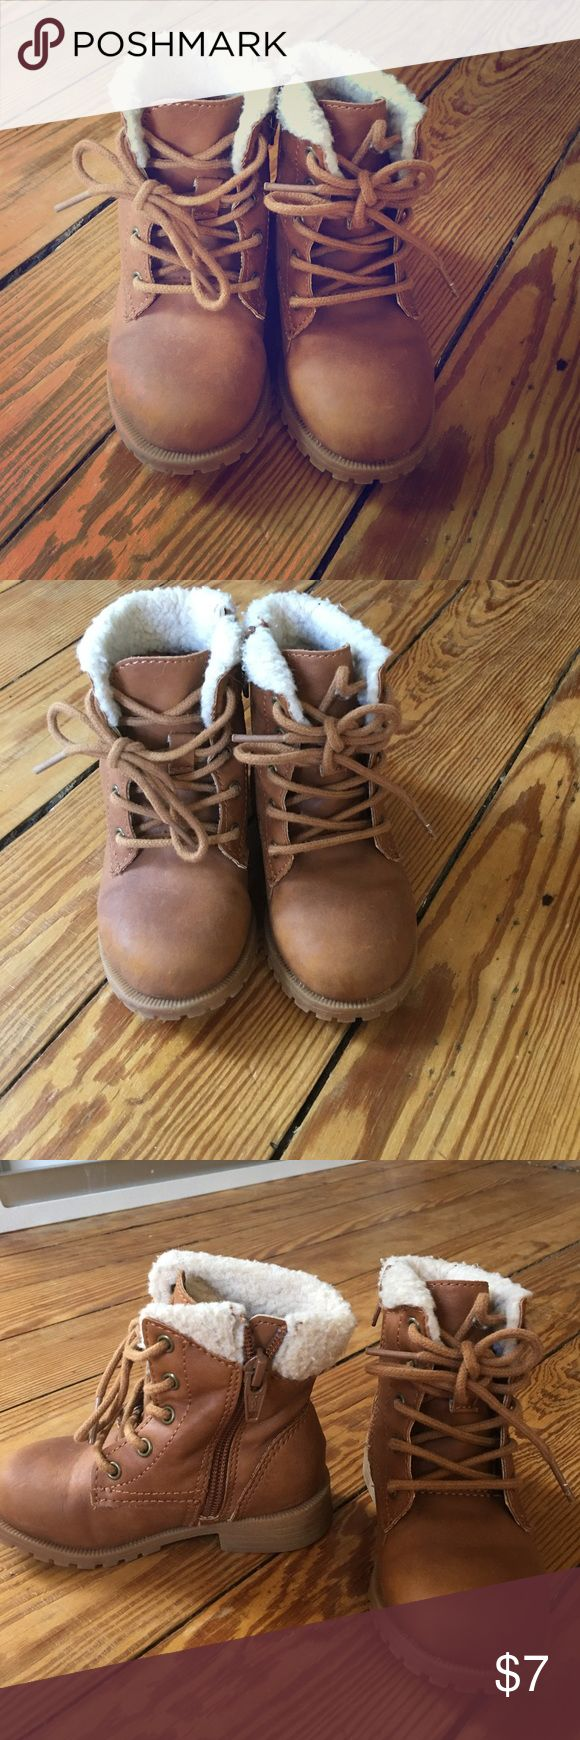 Toddler Girl Brown Boots With Faux Fur Lining Sz 7 Ready for Fall? Toddler Girl Boots by Cat and Jack. Size 7. Lace up in front and also zips on side. Excellent condition. Cat and Jack Shoes Boots